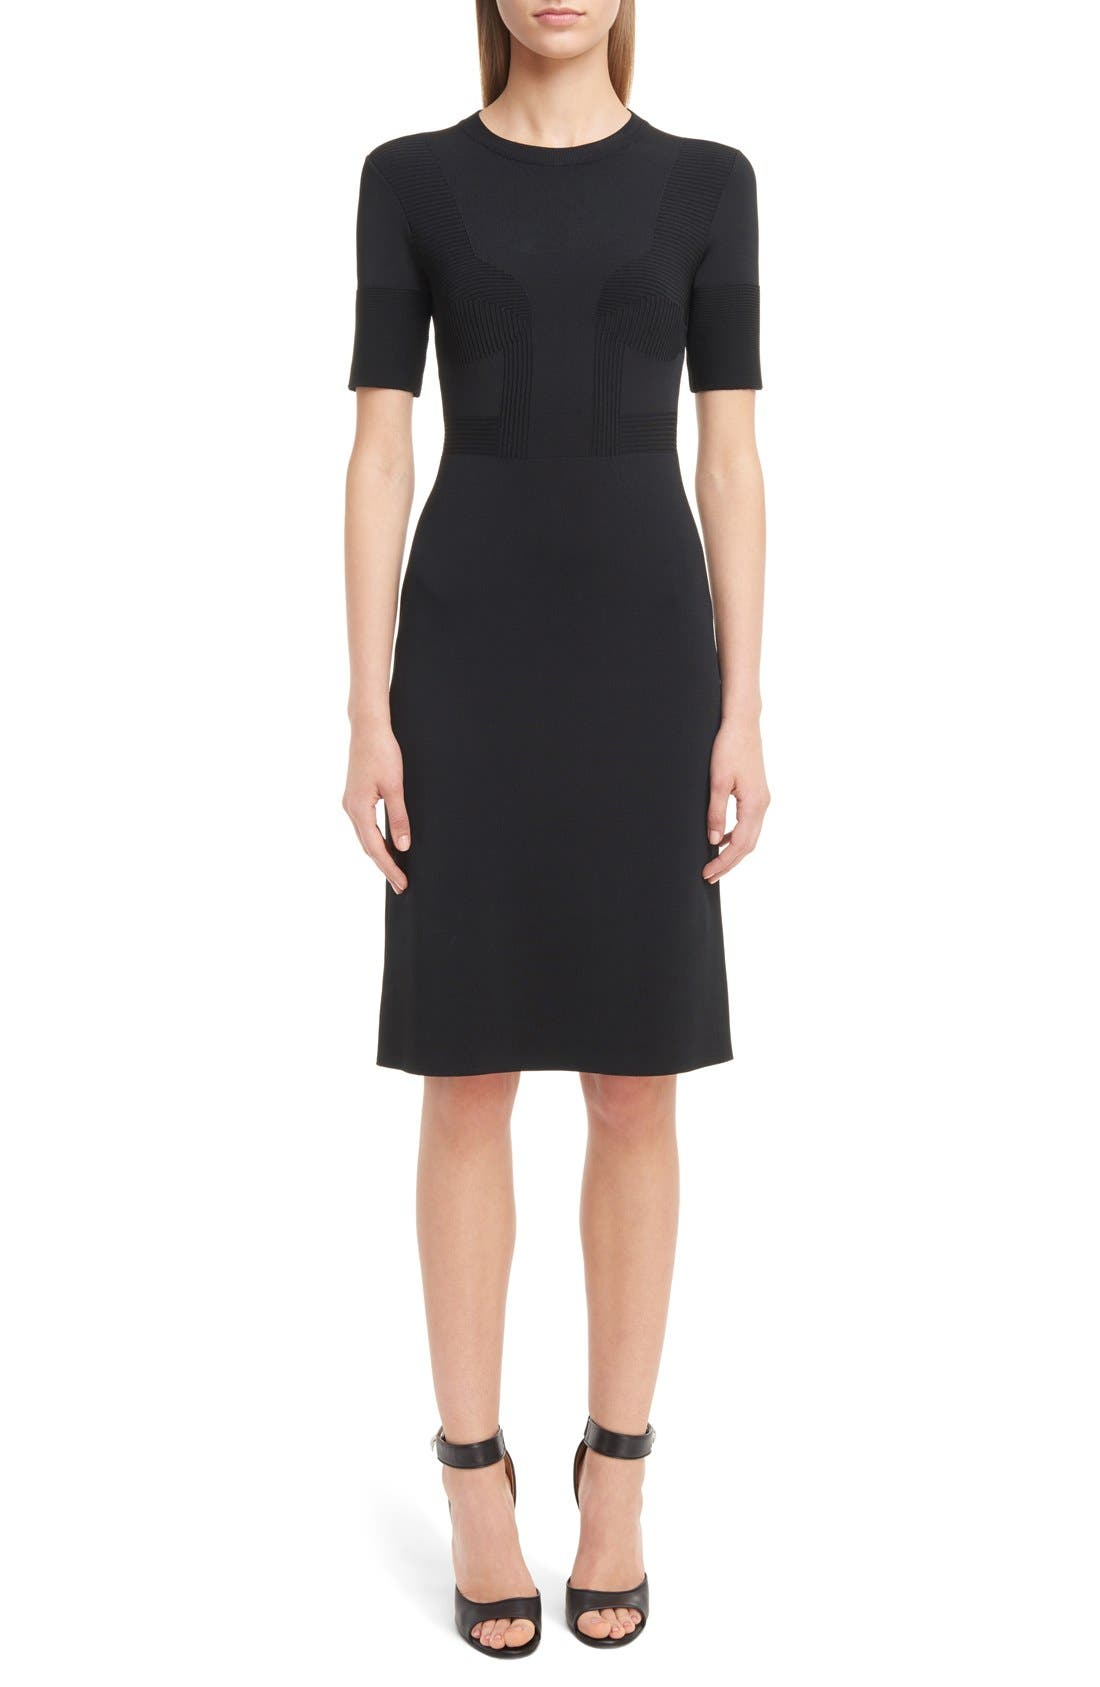 GIVENCHY Punto Milano Knit Bustier Dress